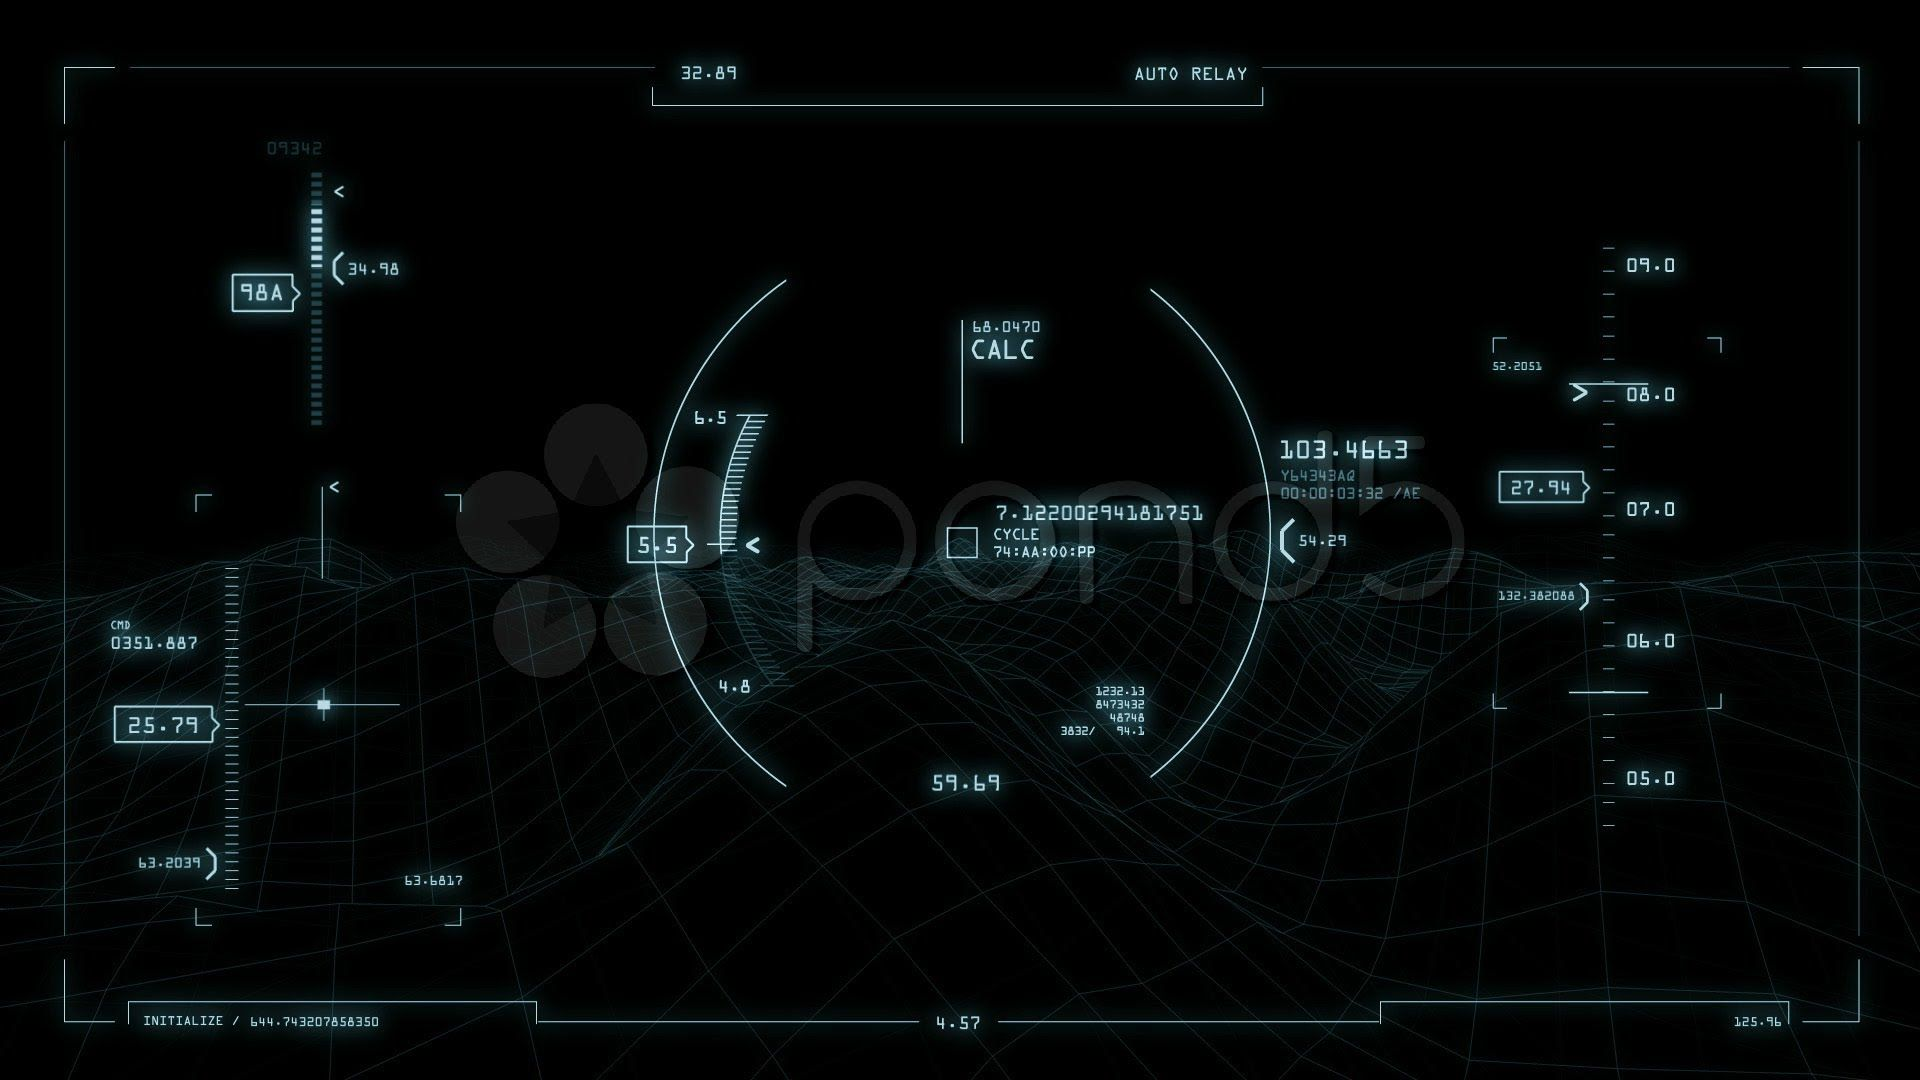 Animated 3d wallpaper jarvis interface - Animation Futuristic Interface Animation With 3d